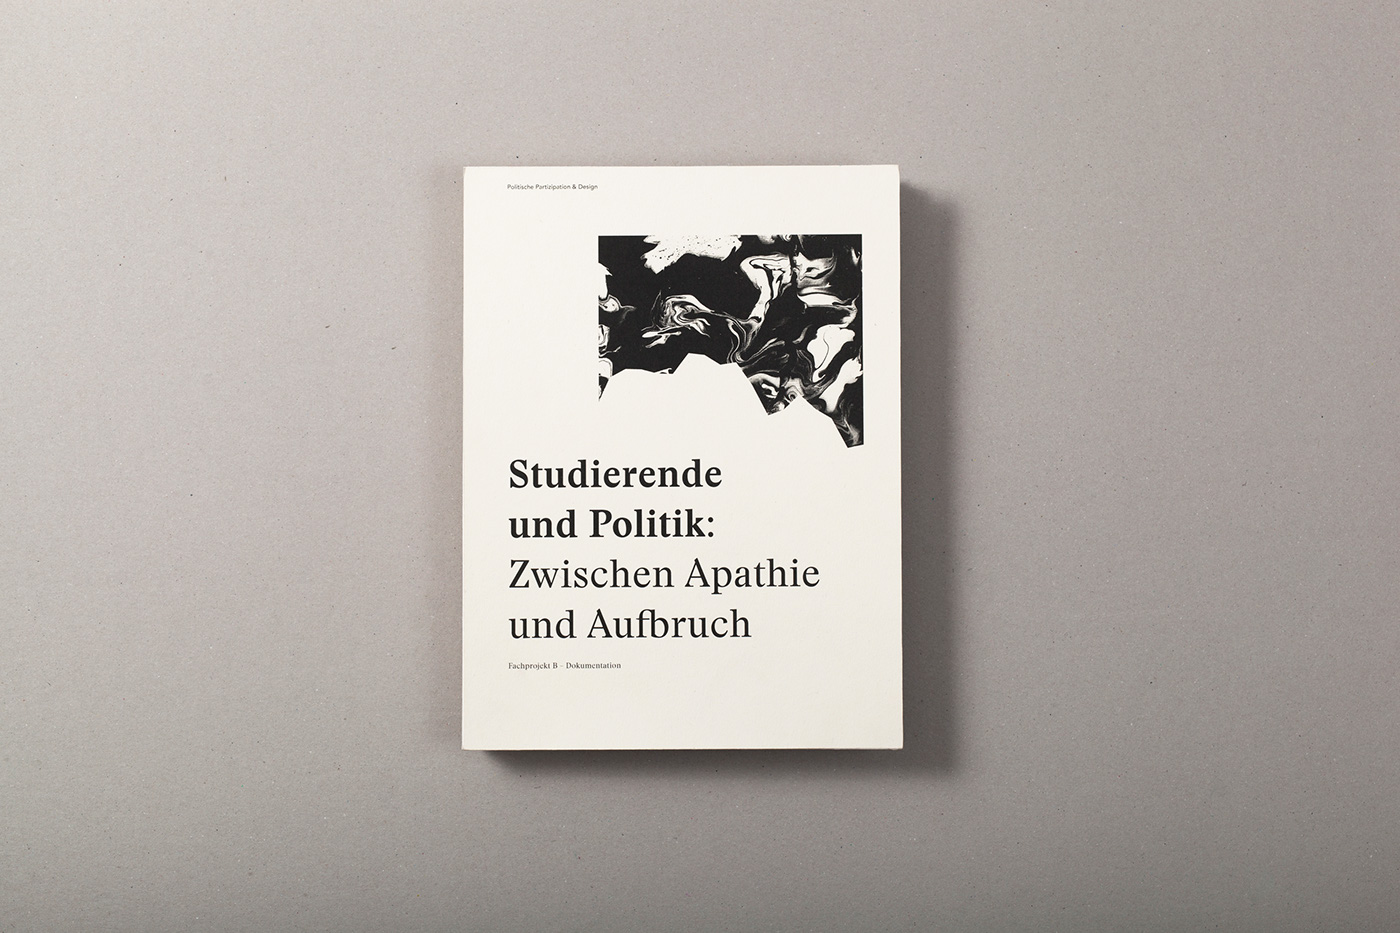 research politic society Layout typography   graphic editorial student münster FH Münster